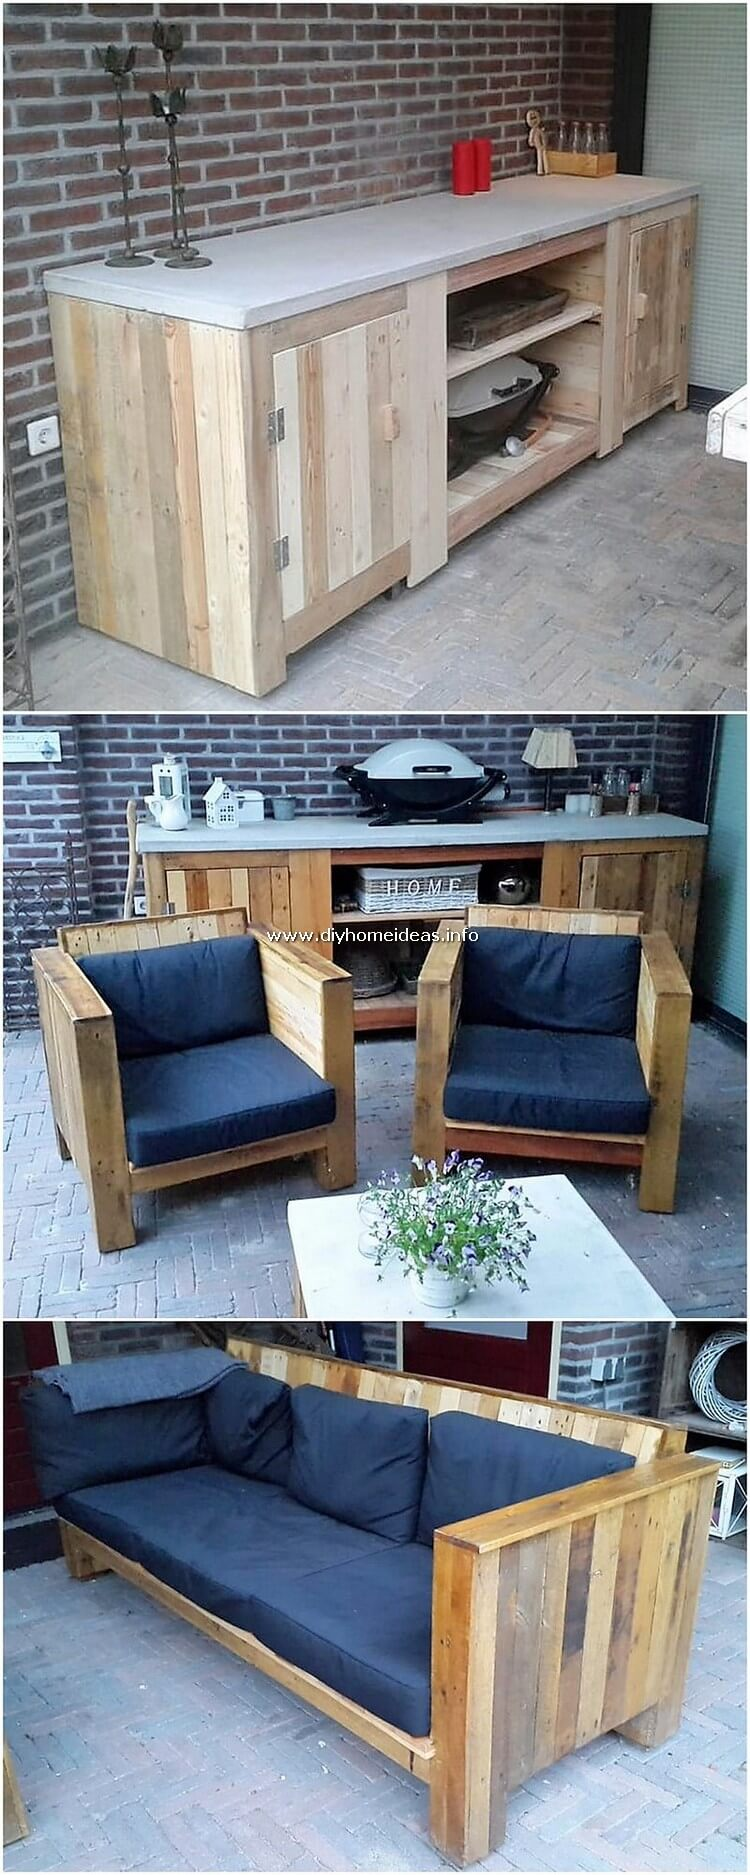 Pallet Cabinet Chairs and Bench